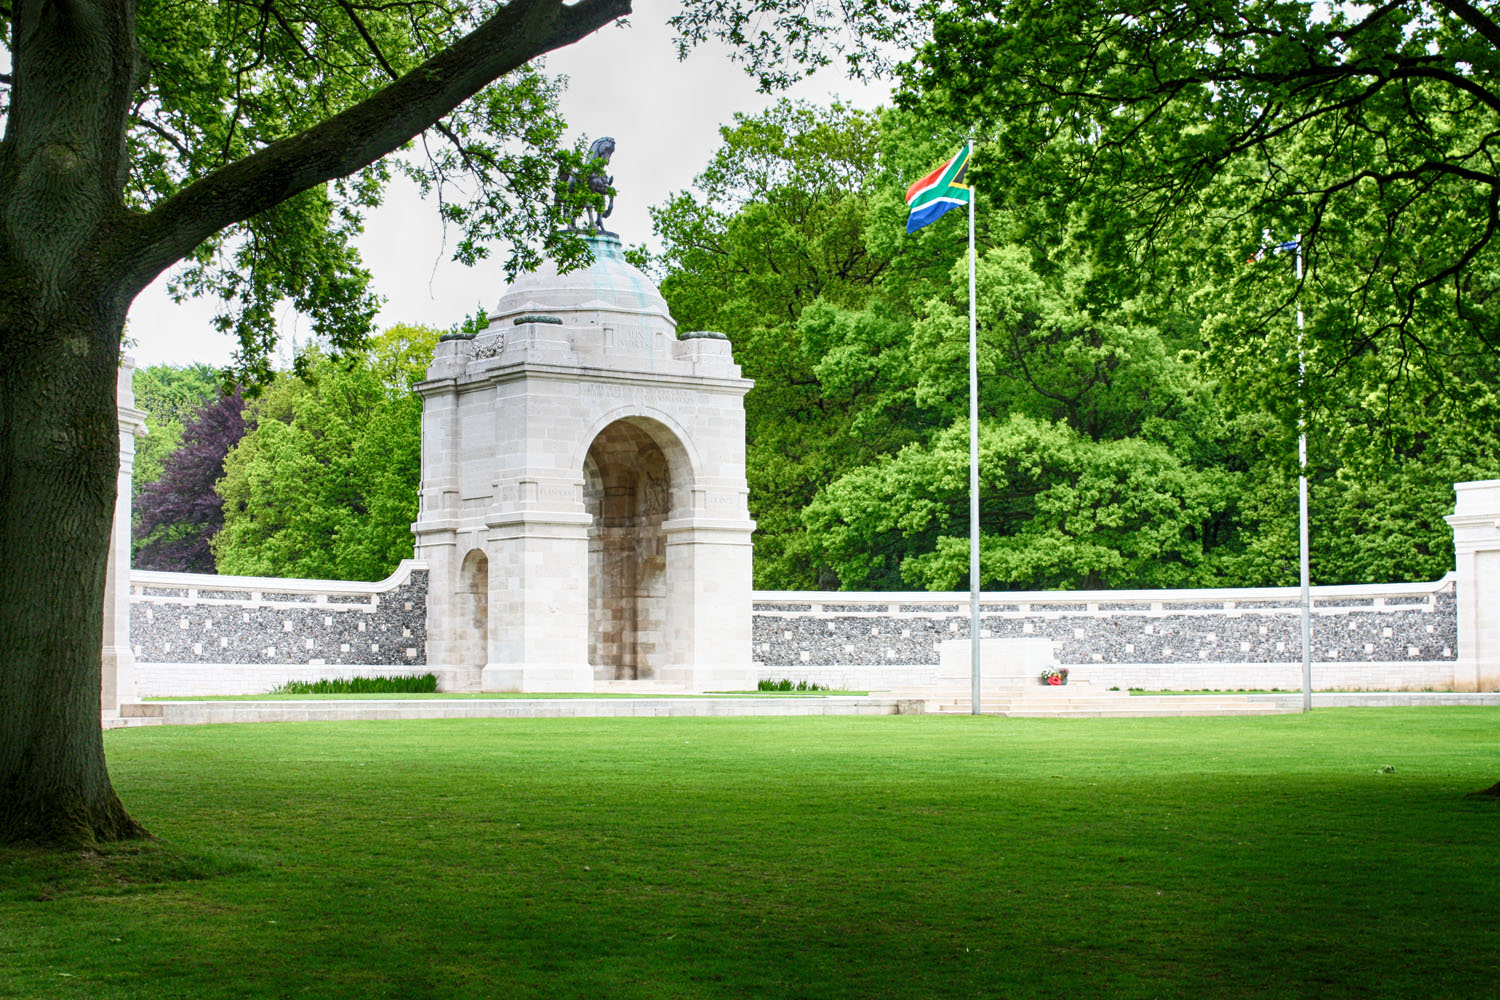 Delville Wood South African National Memorial